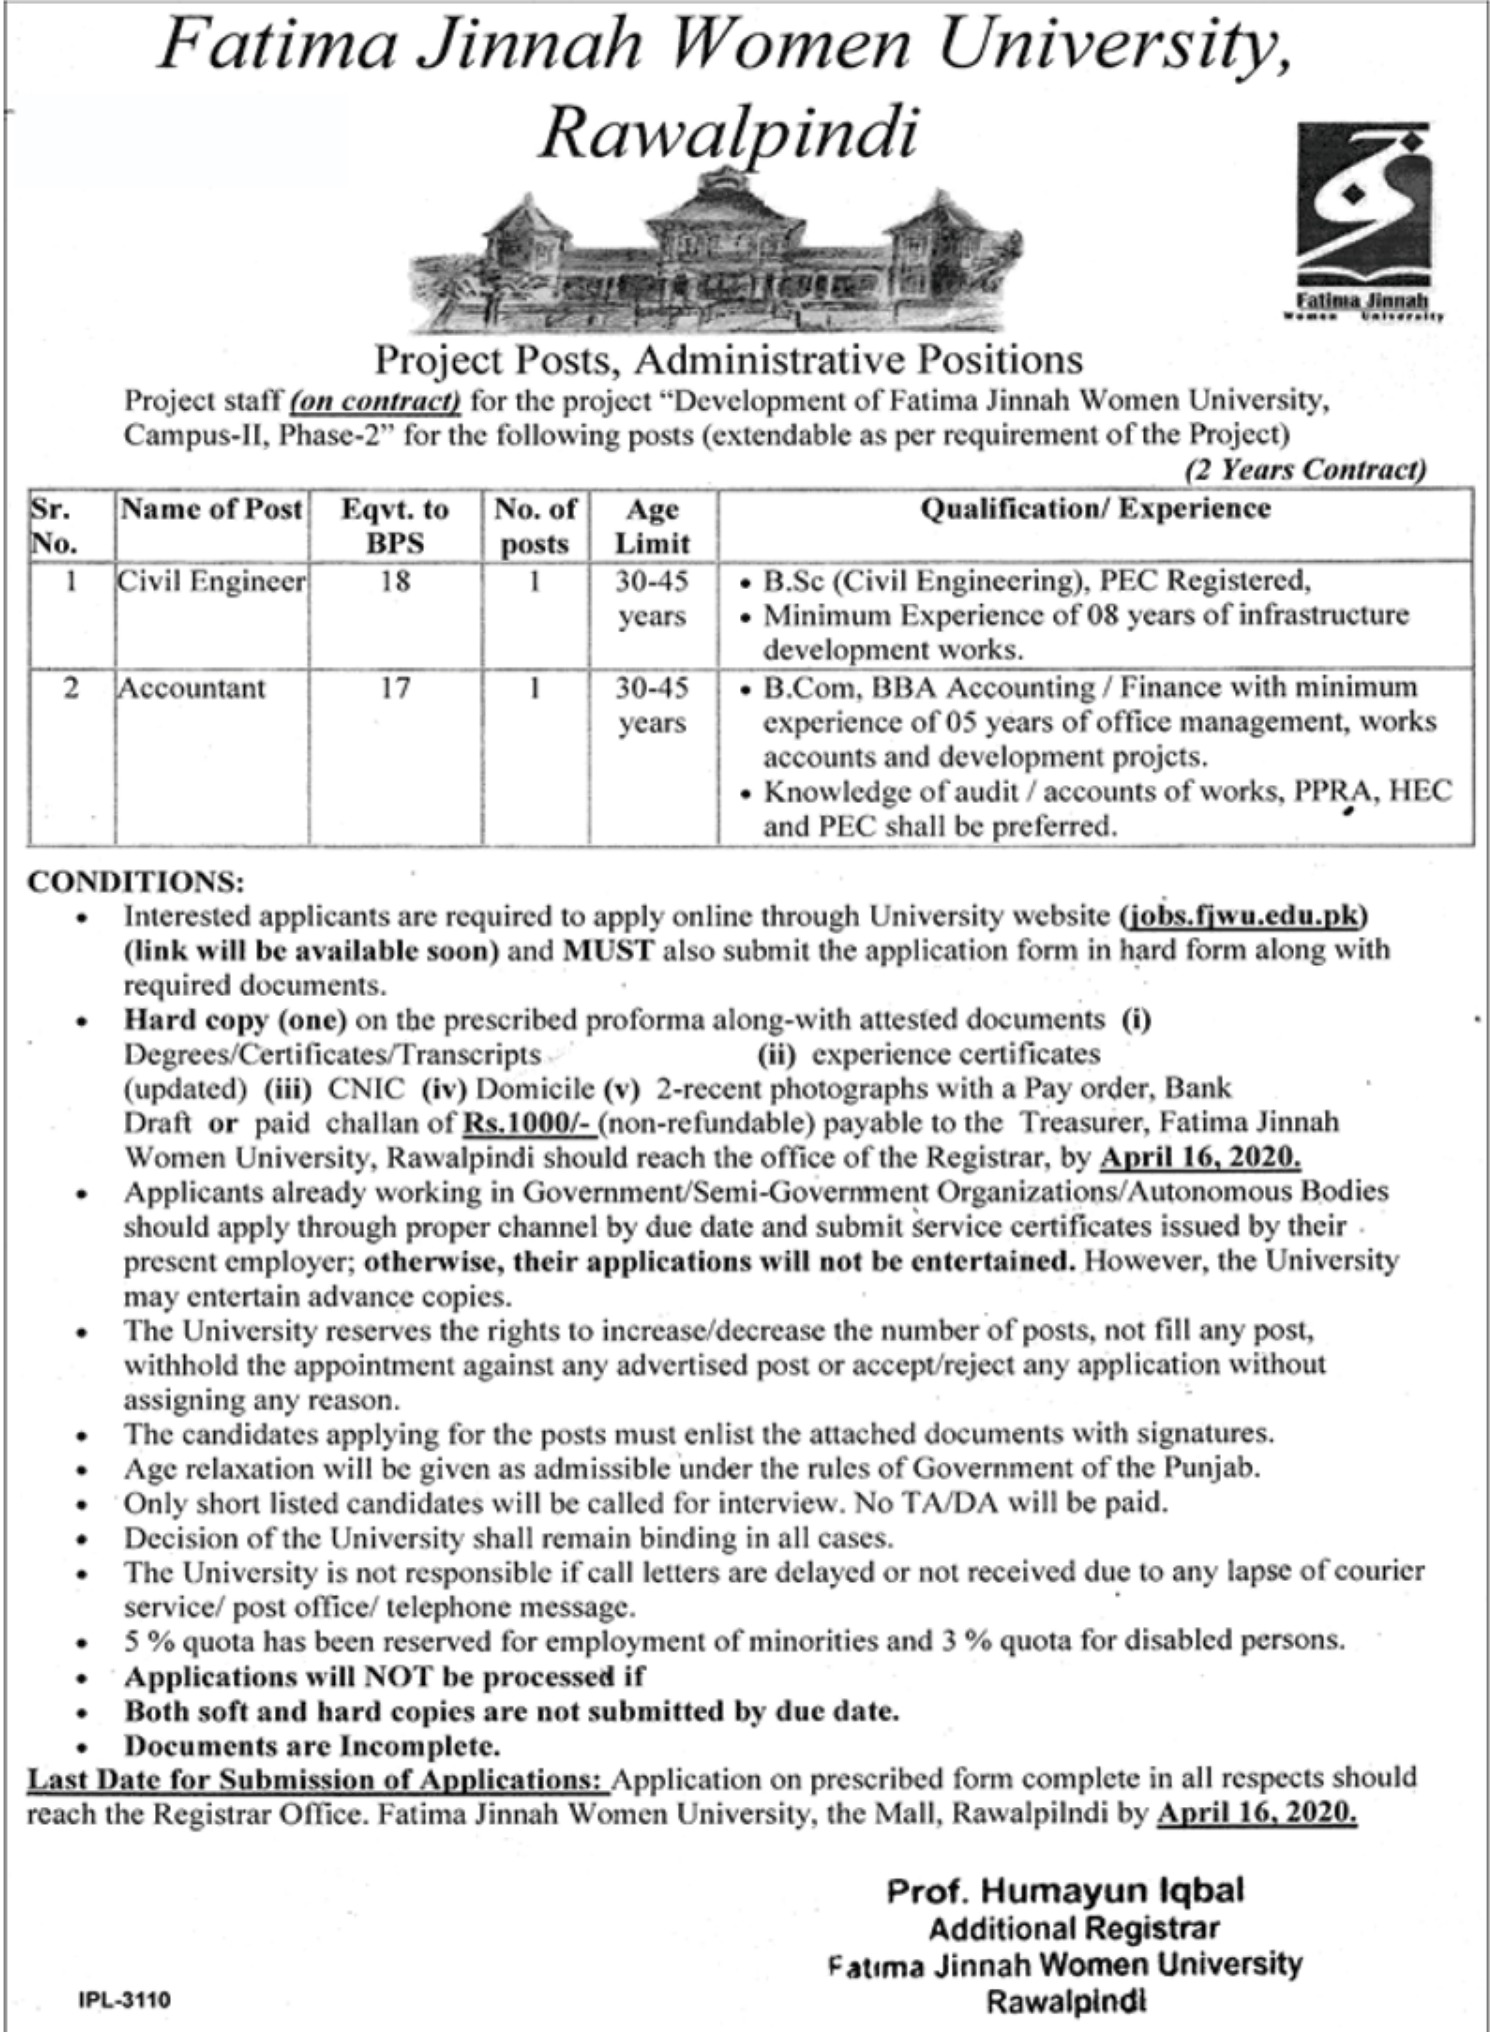 FJMU Rawalpindi Jobs 2020 Fatima Jinnah Women University